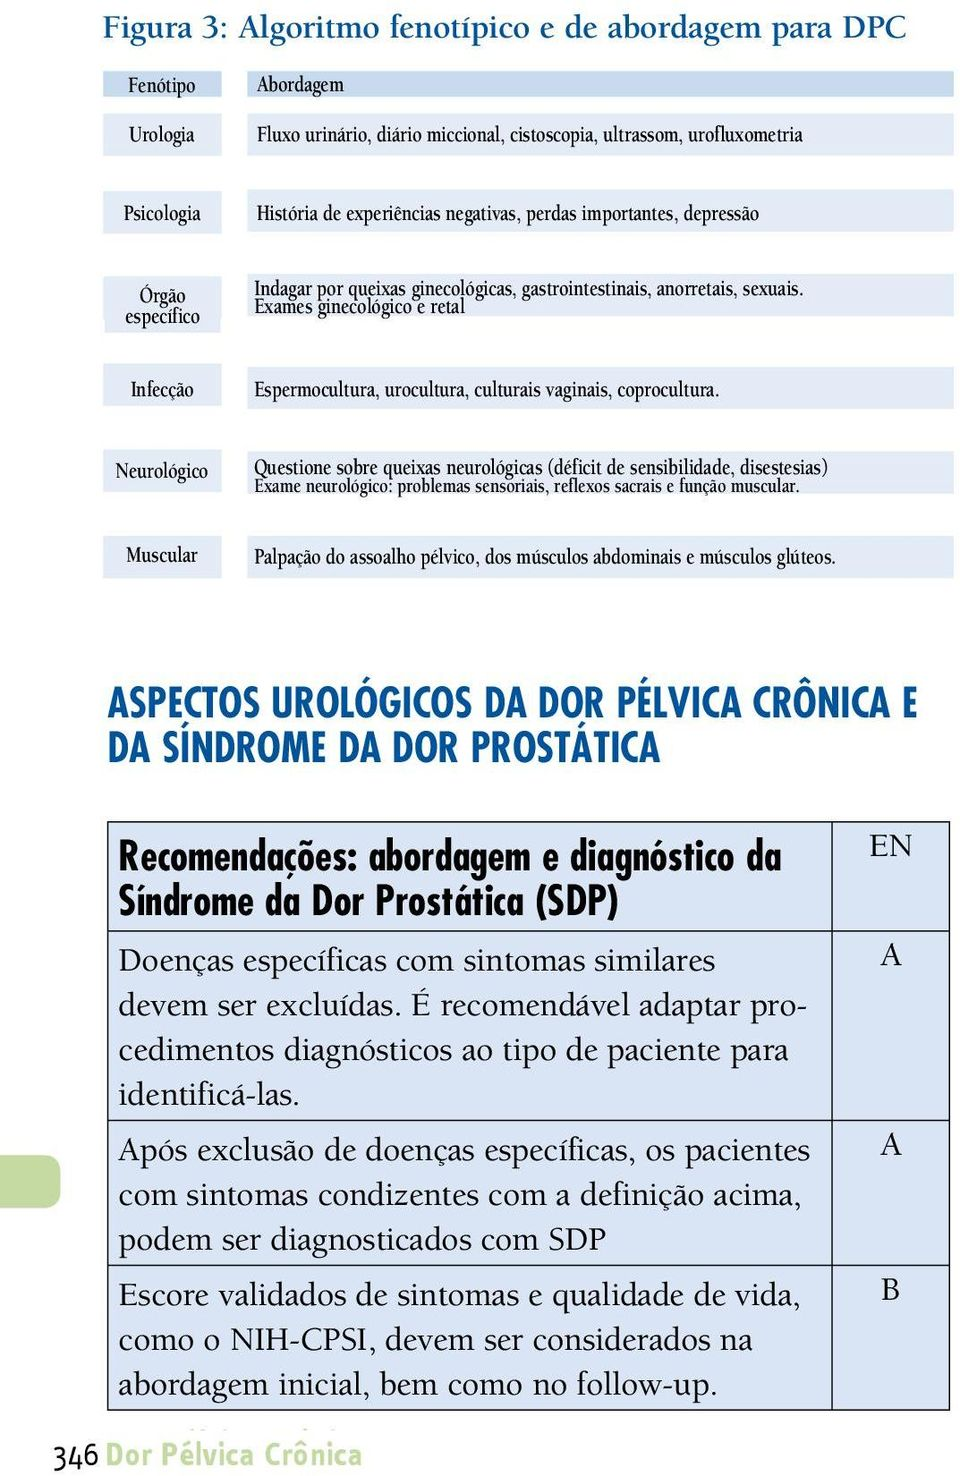 negativas, important loss, perdas coping importantes, mechanism, depression depressão Órgão específico Organ specific Indagar sk for gynaecological, por queixas gastro-intestinal, ginecológicas,